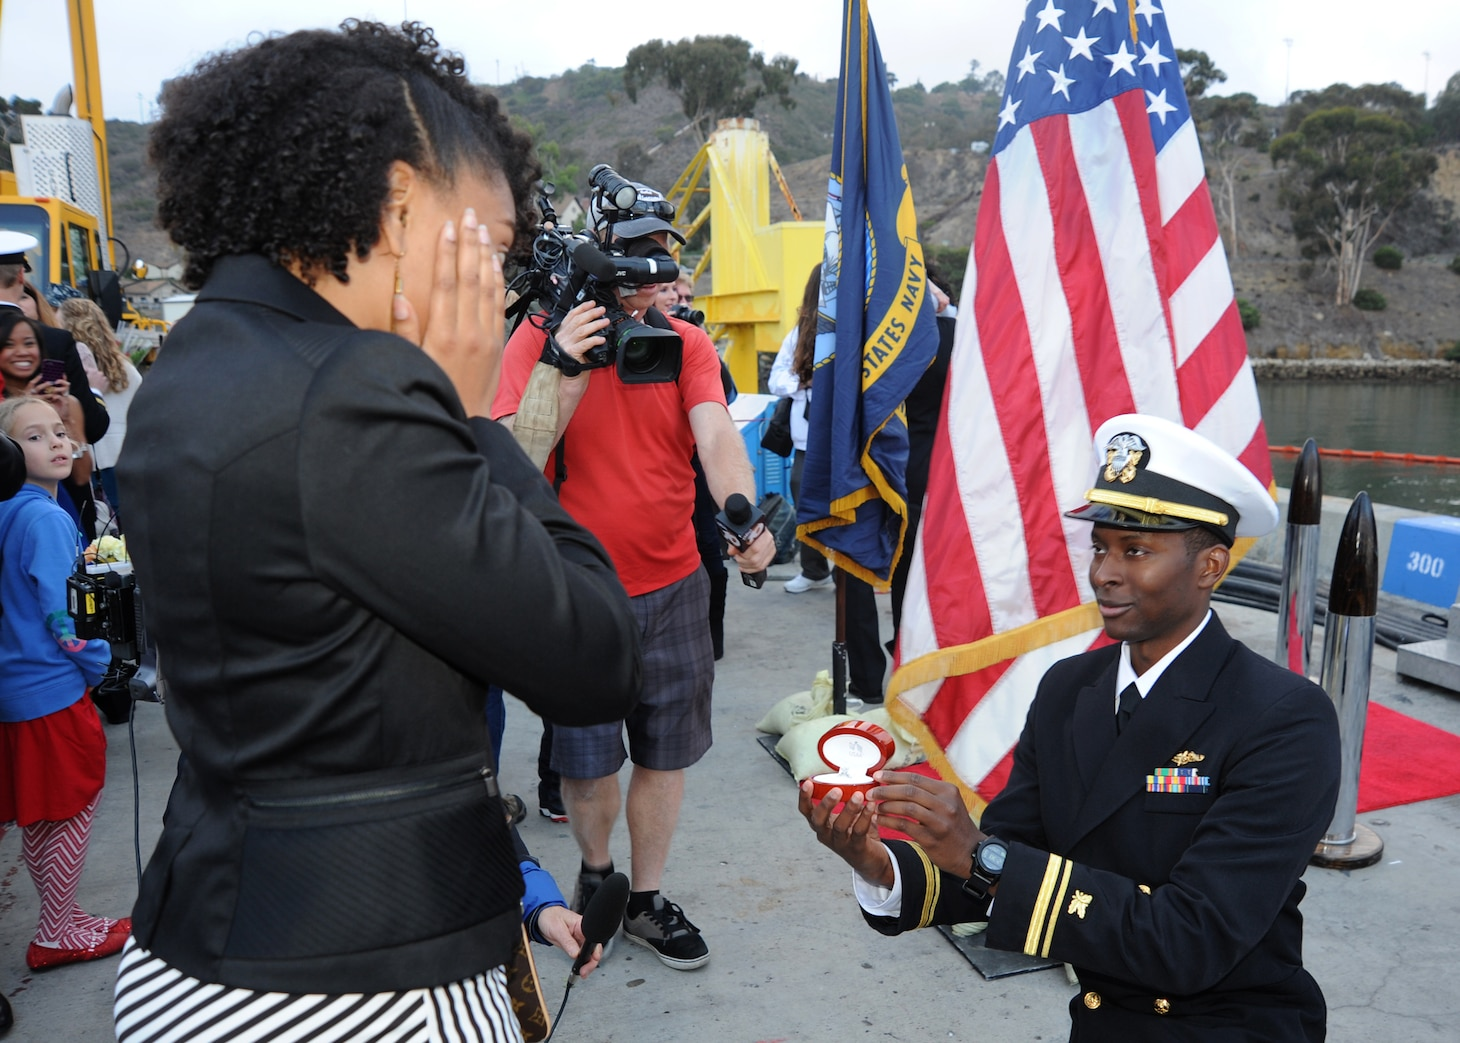 SAN DIEGO (December 18, 2013)  Lt.j.g. Justin Gay proposes to his girlfriend Cynthia Fambro following the return of the Los Angeles-class attack submarine USS USS Hampton (SSN 767) to Naval Base Point Loma after completing a six-month deployment to the western Pacific region. U.S. Navy photo by Mass Communication Specialist 2nd Class Kyle Carlstrom (Released)